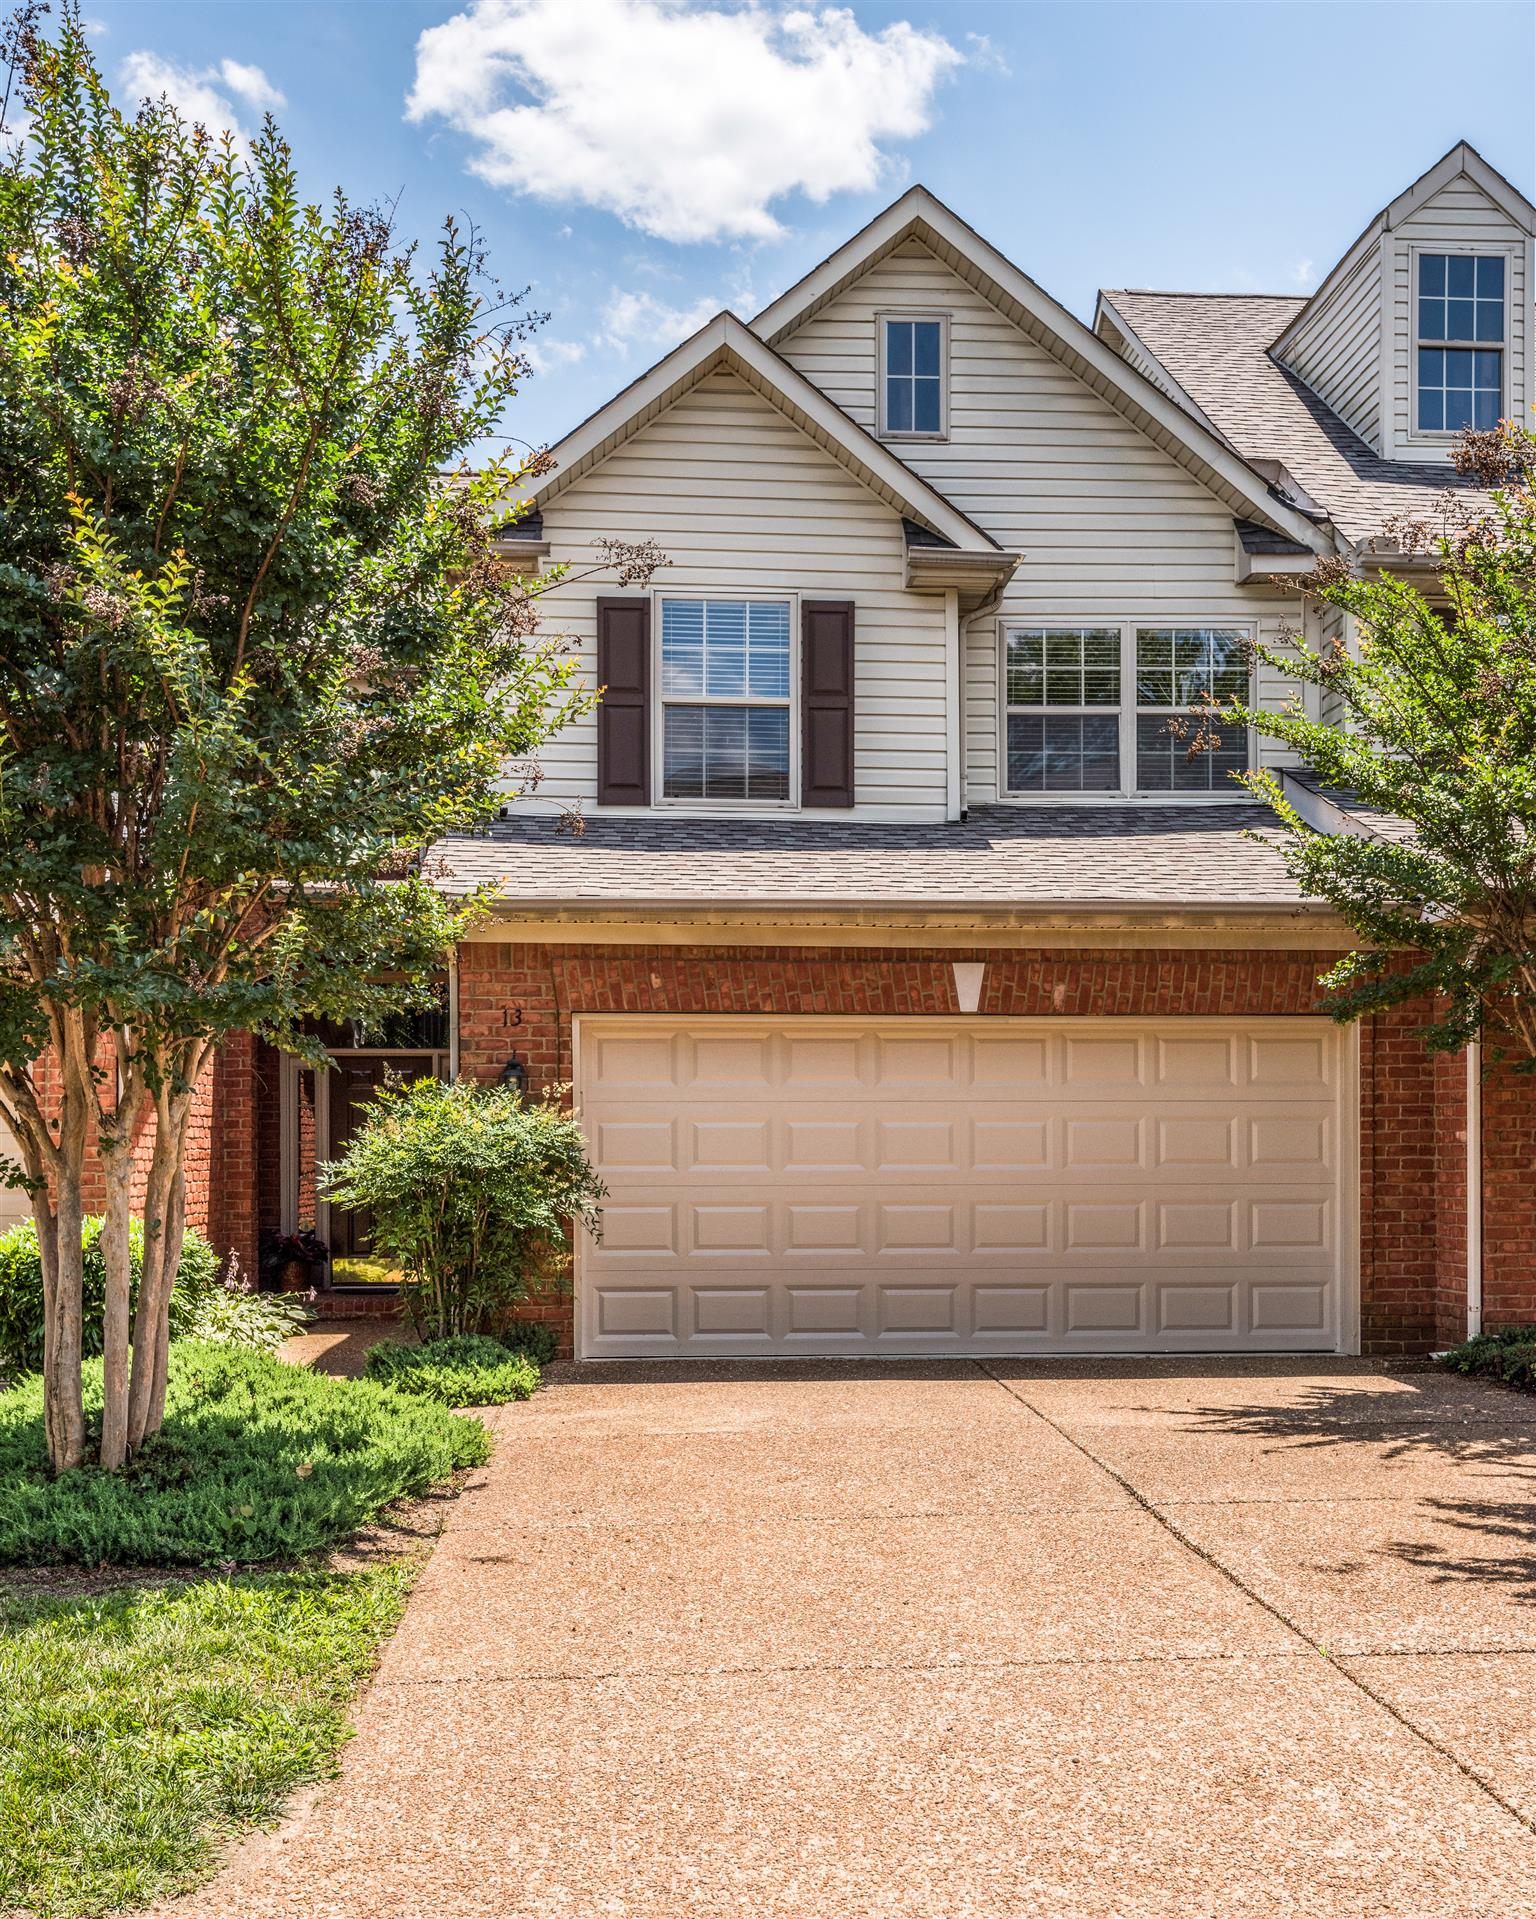 641 Old Hickory Blvd Unit 13, Brentwood, TN 37027